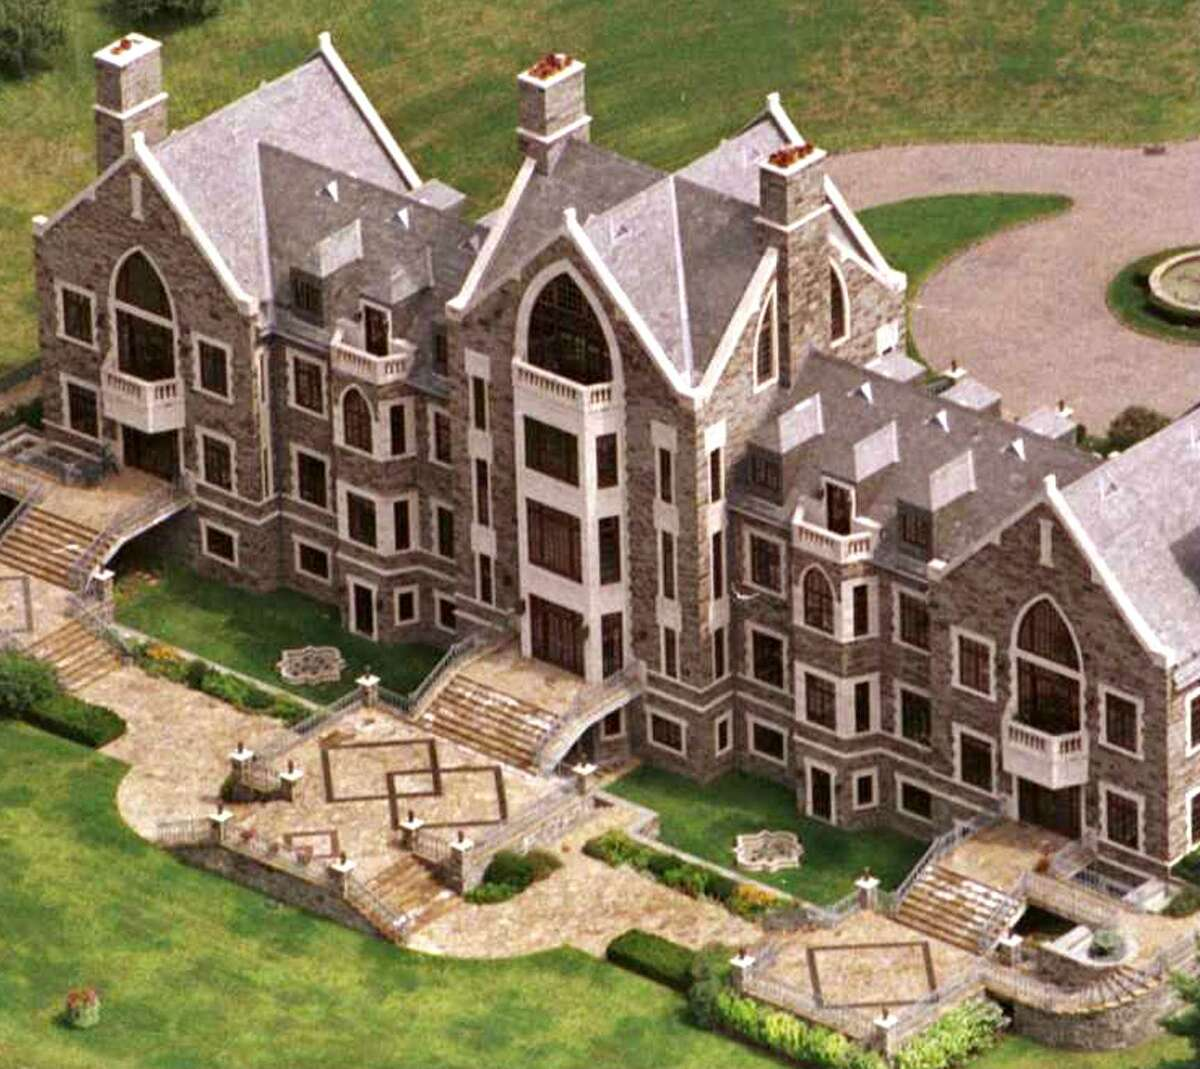 Aerial view of the house known as Llenroc Aug. 21, 1996, in Rexford, N.Y. (Stephen Weaver/Times Union)